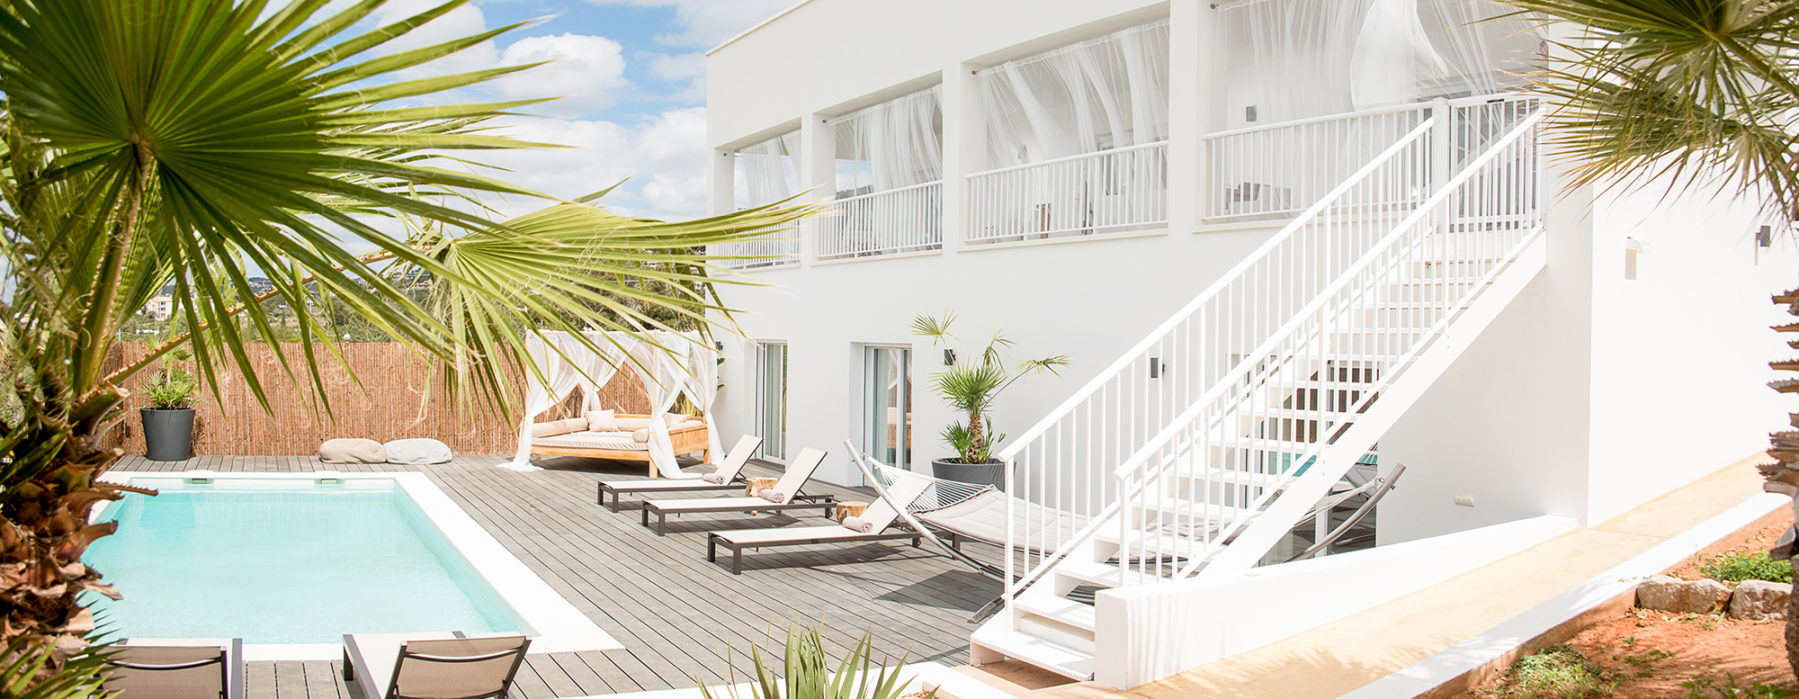 Villa Talamanca 1 - Ibiza Selected